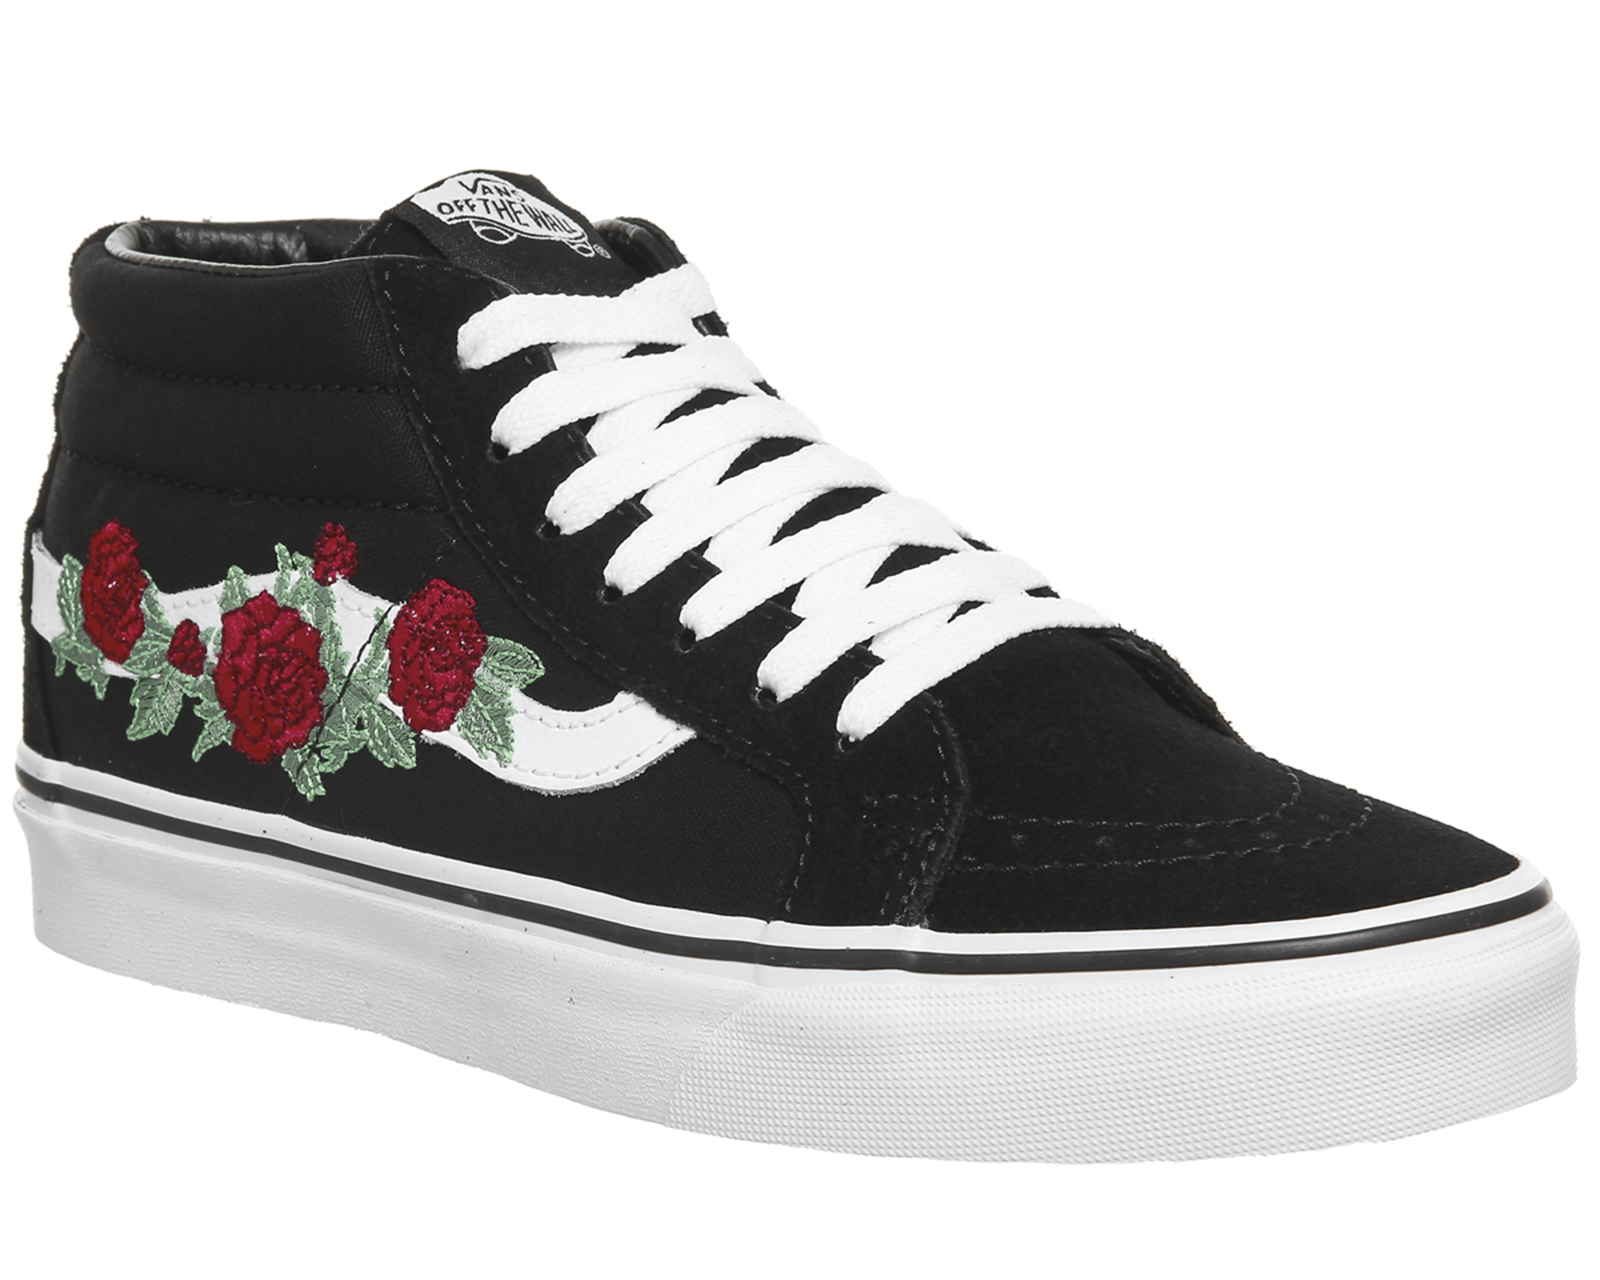 ce600bdd3f6a Sentinel Womens Vans Sk8 Mid Trainers BLACK RED ROSE Trainers Shoes